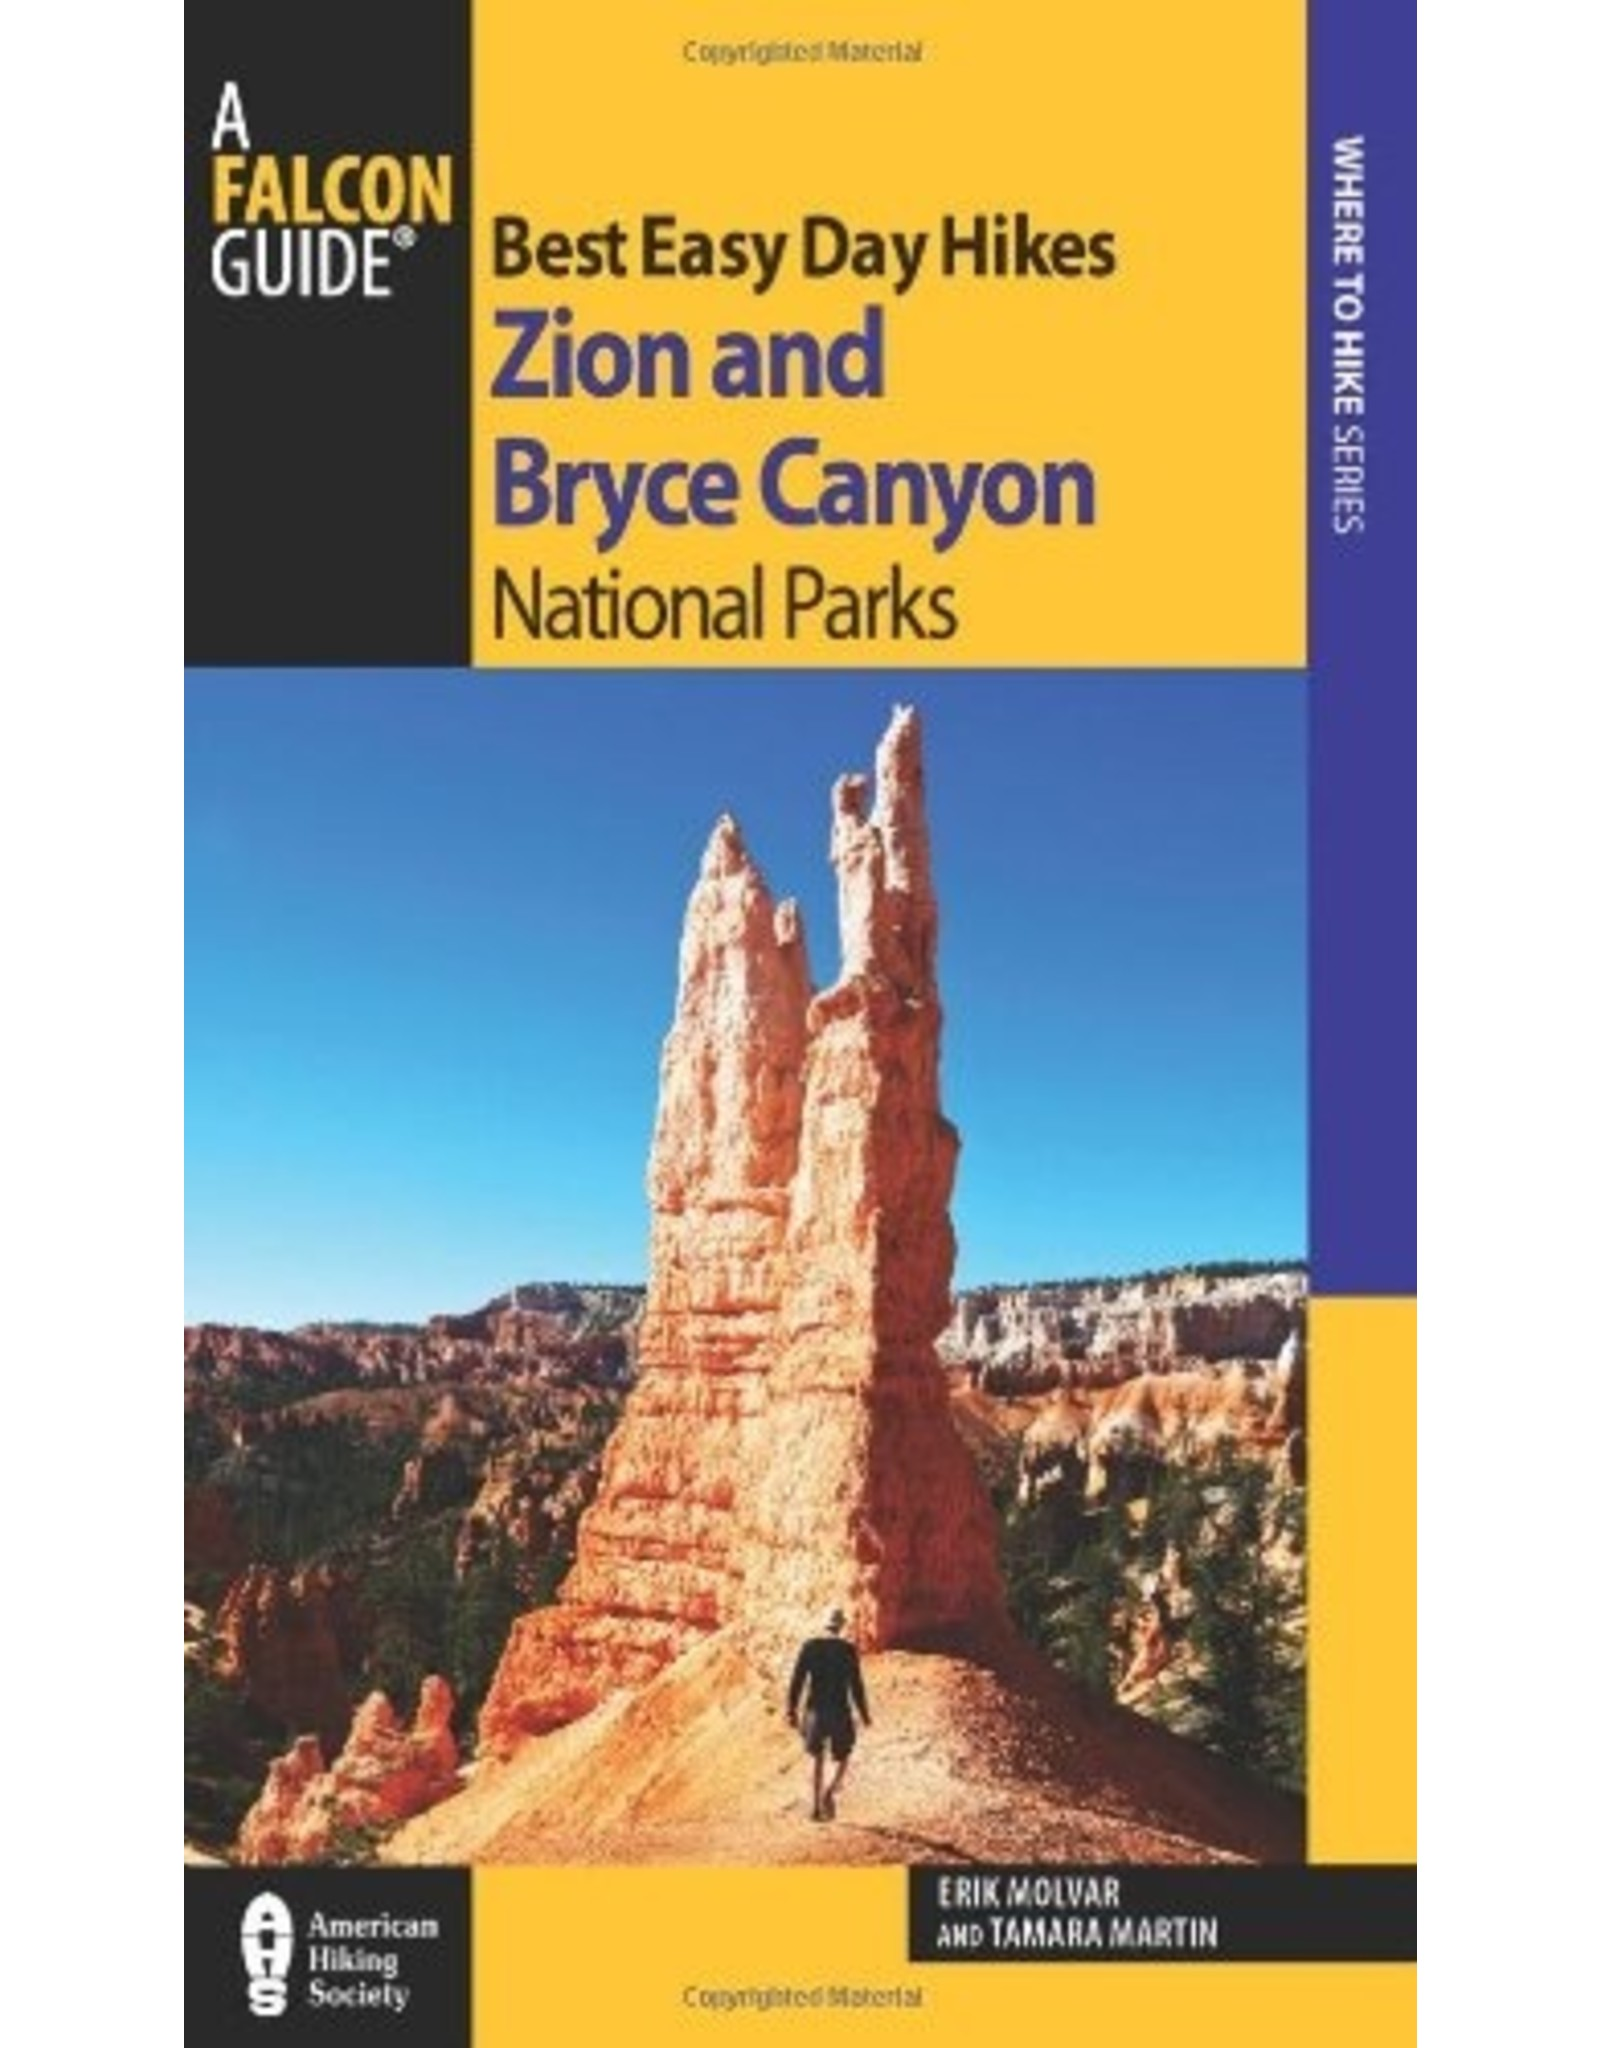 Best Easy Day Hikes Zion and Bryce Canyon National Parks (Best Easy Day Hikes Series) Paperback – Illustrated